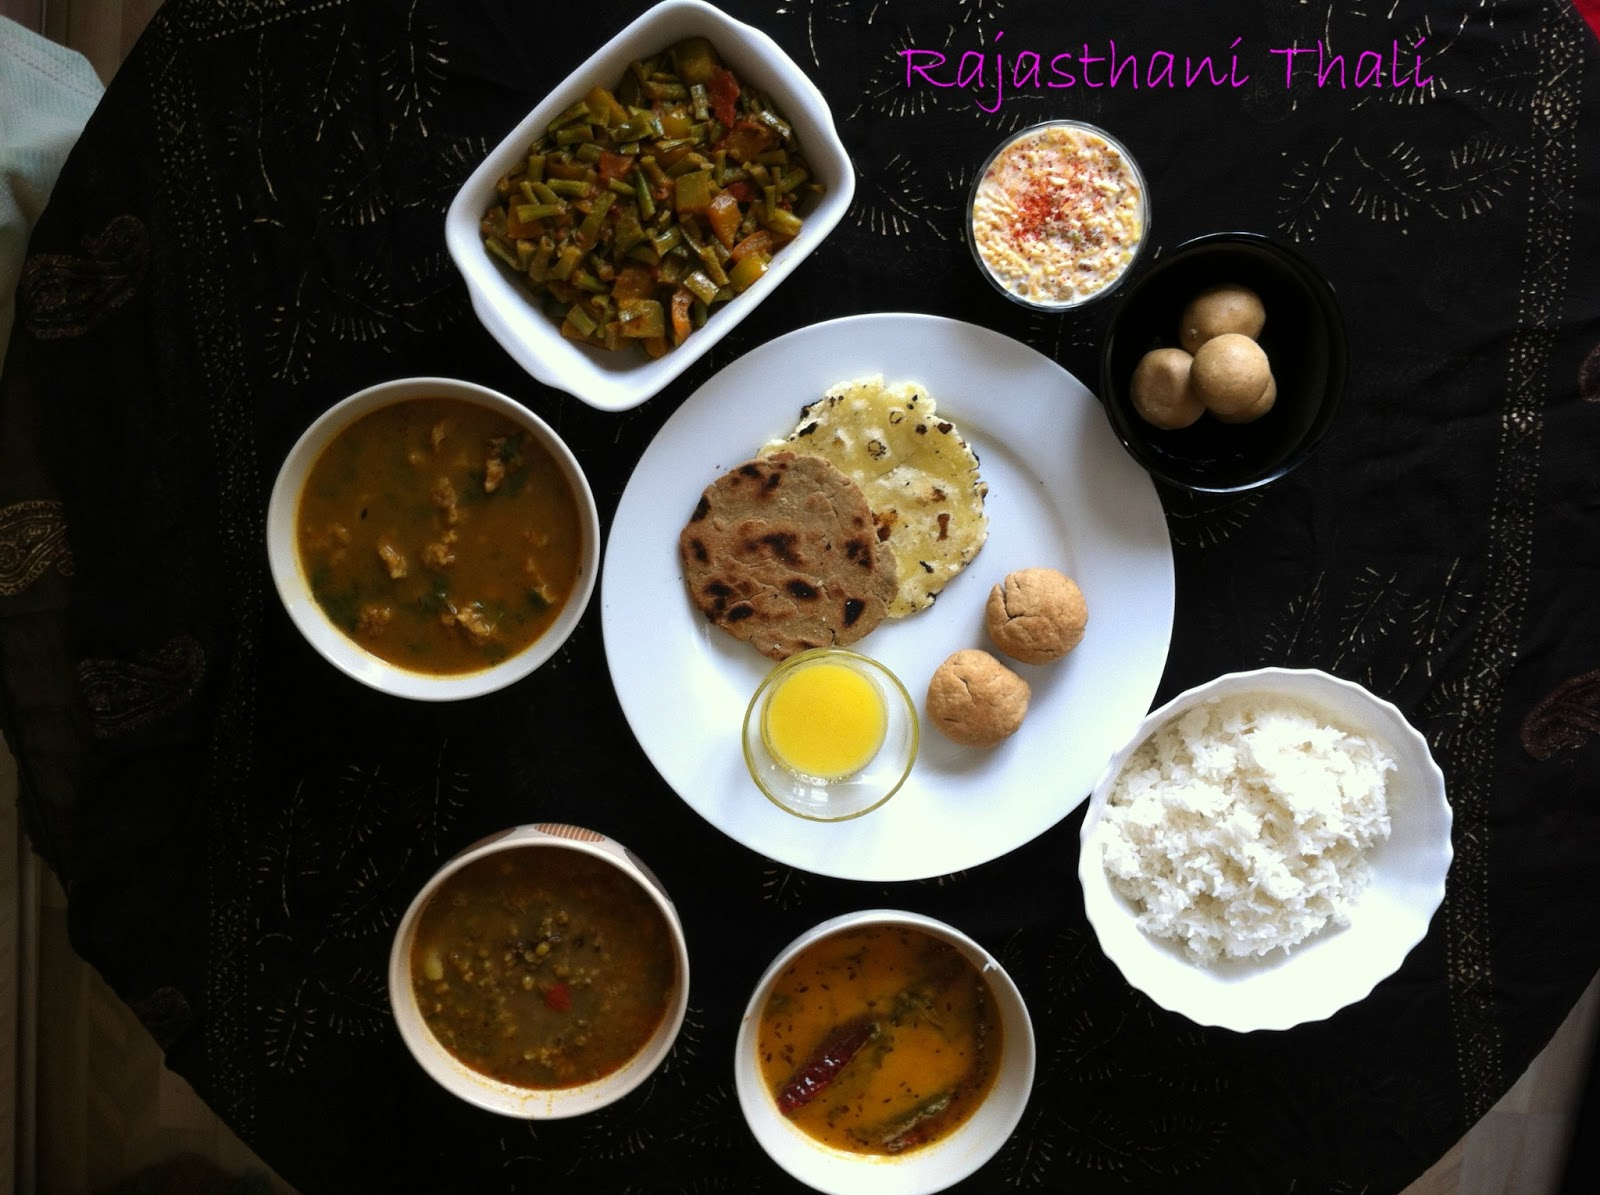 Saranis kitchen rajasthani thali thanks for manjula for this wonderful recipe first time am tasting rajastani recipes i simply loved ite best part in rajastani thali is i didnt use forumfinder Choice Image